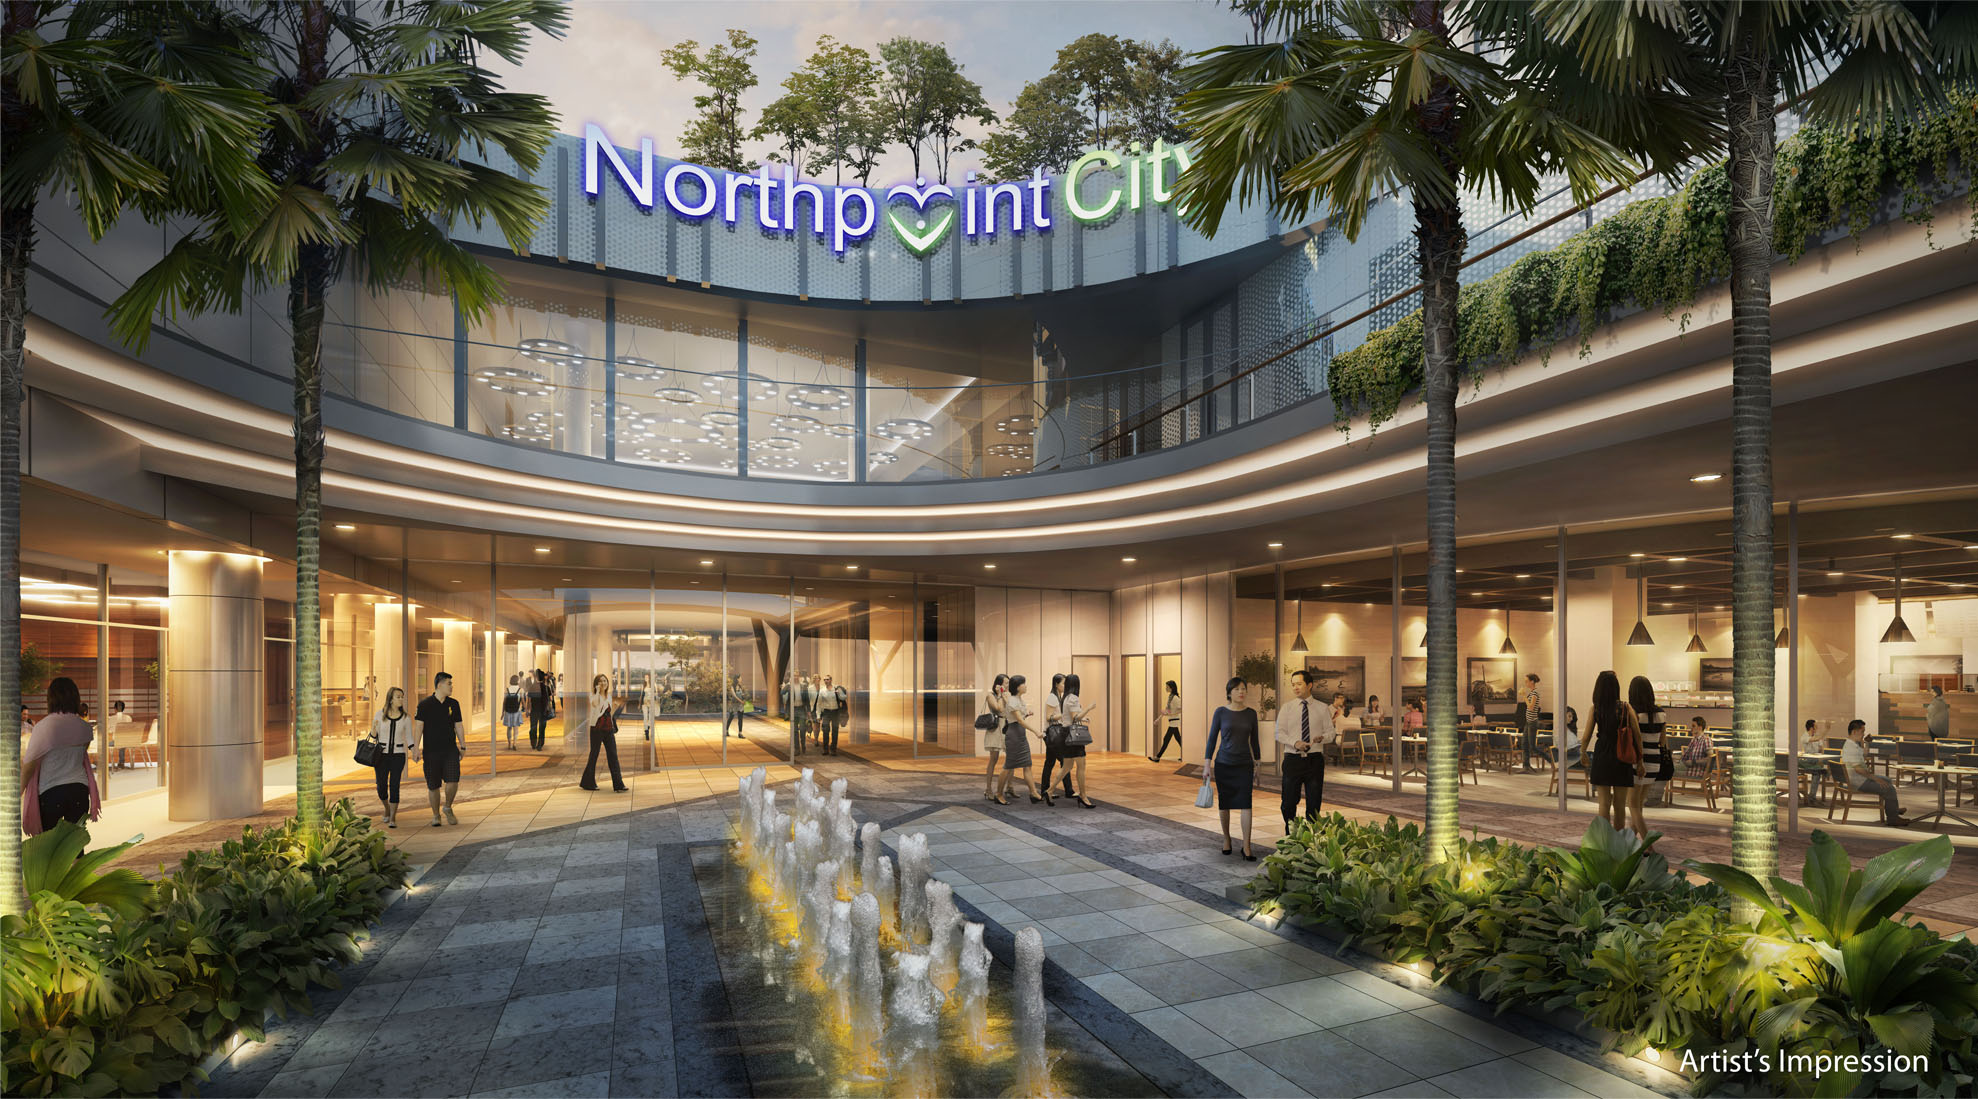 Northpoint-city